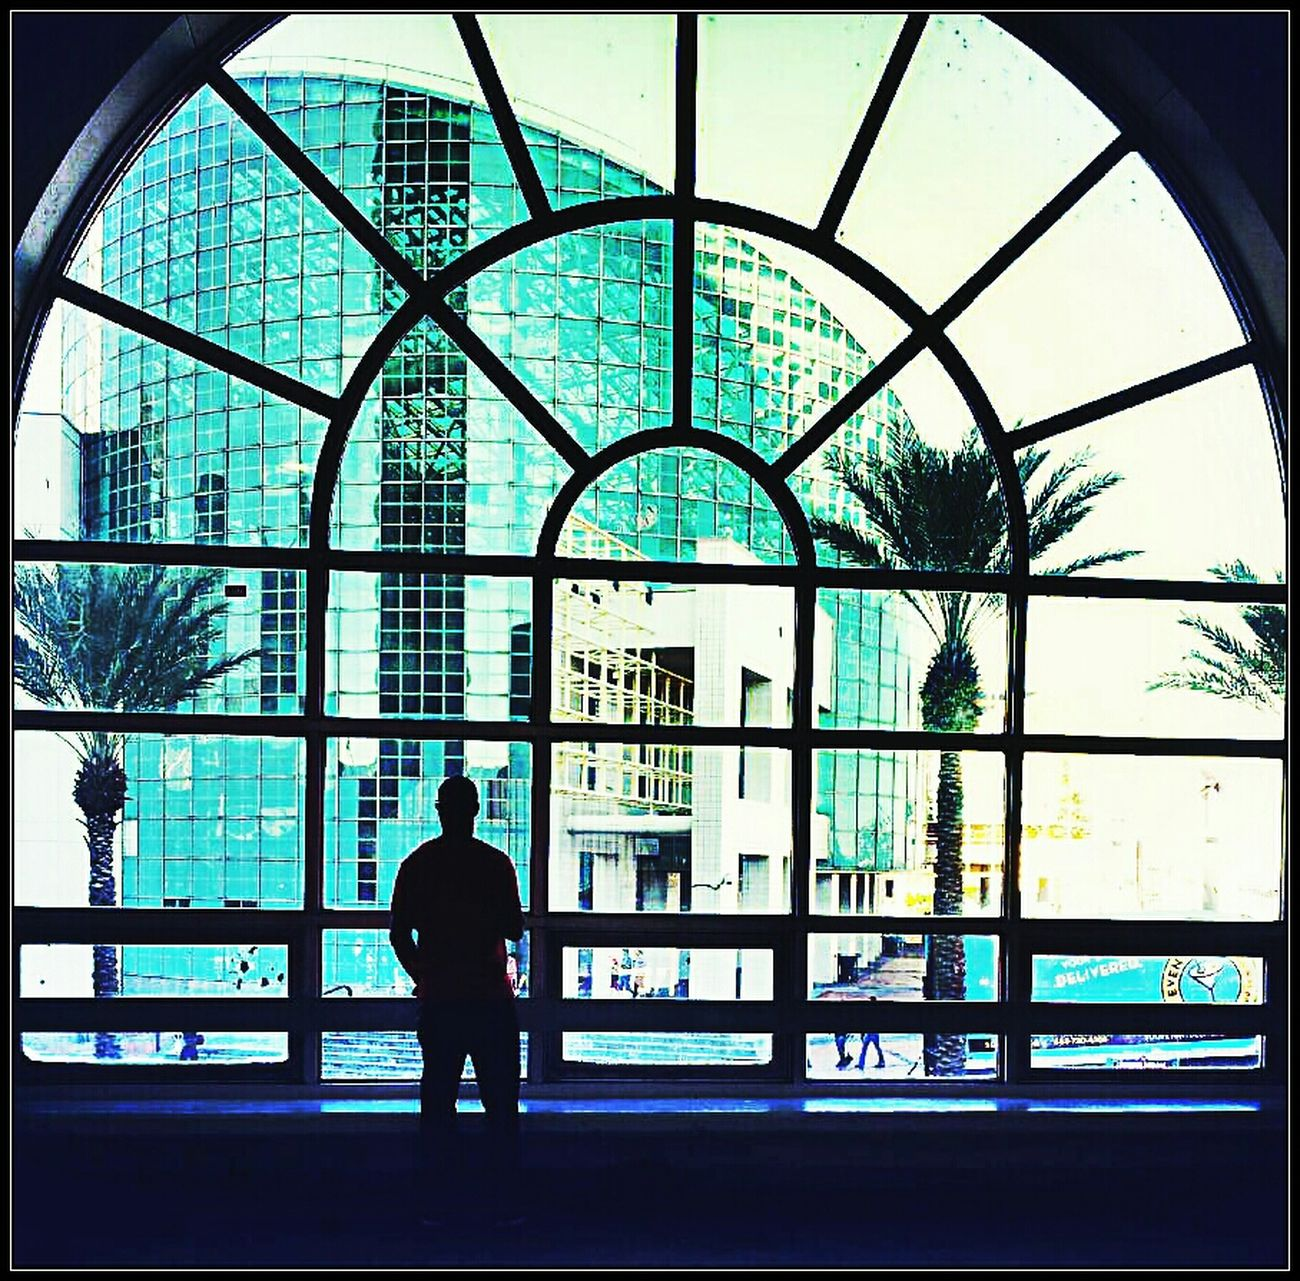 Relaxing Reflection Streetphotography Glass Taking Photos Enjoying The View Blue Building Window Photography Jus Because